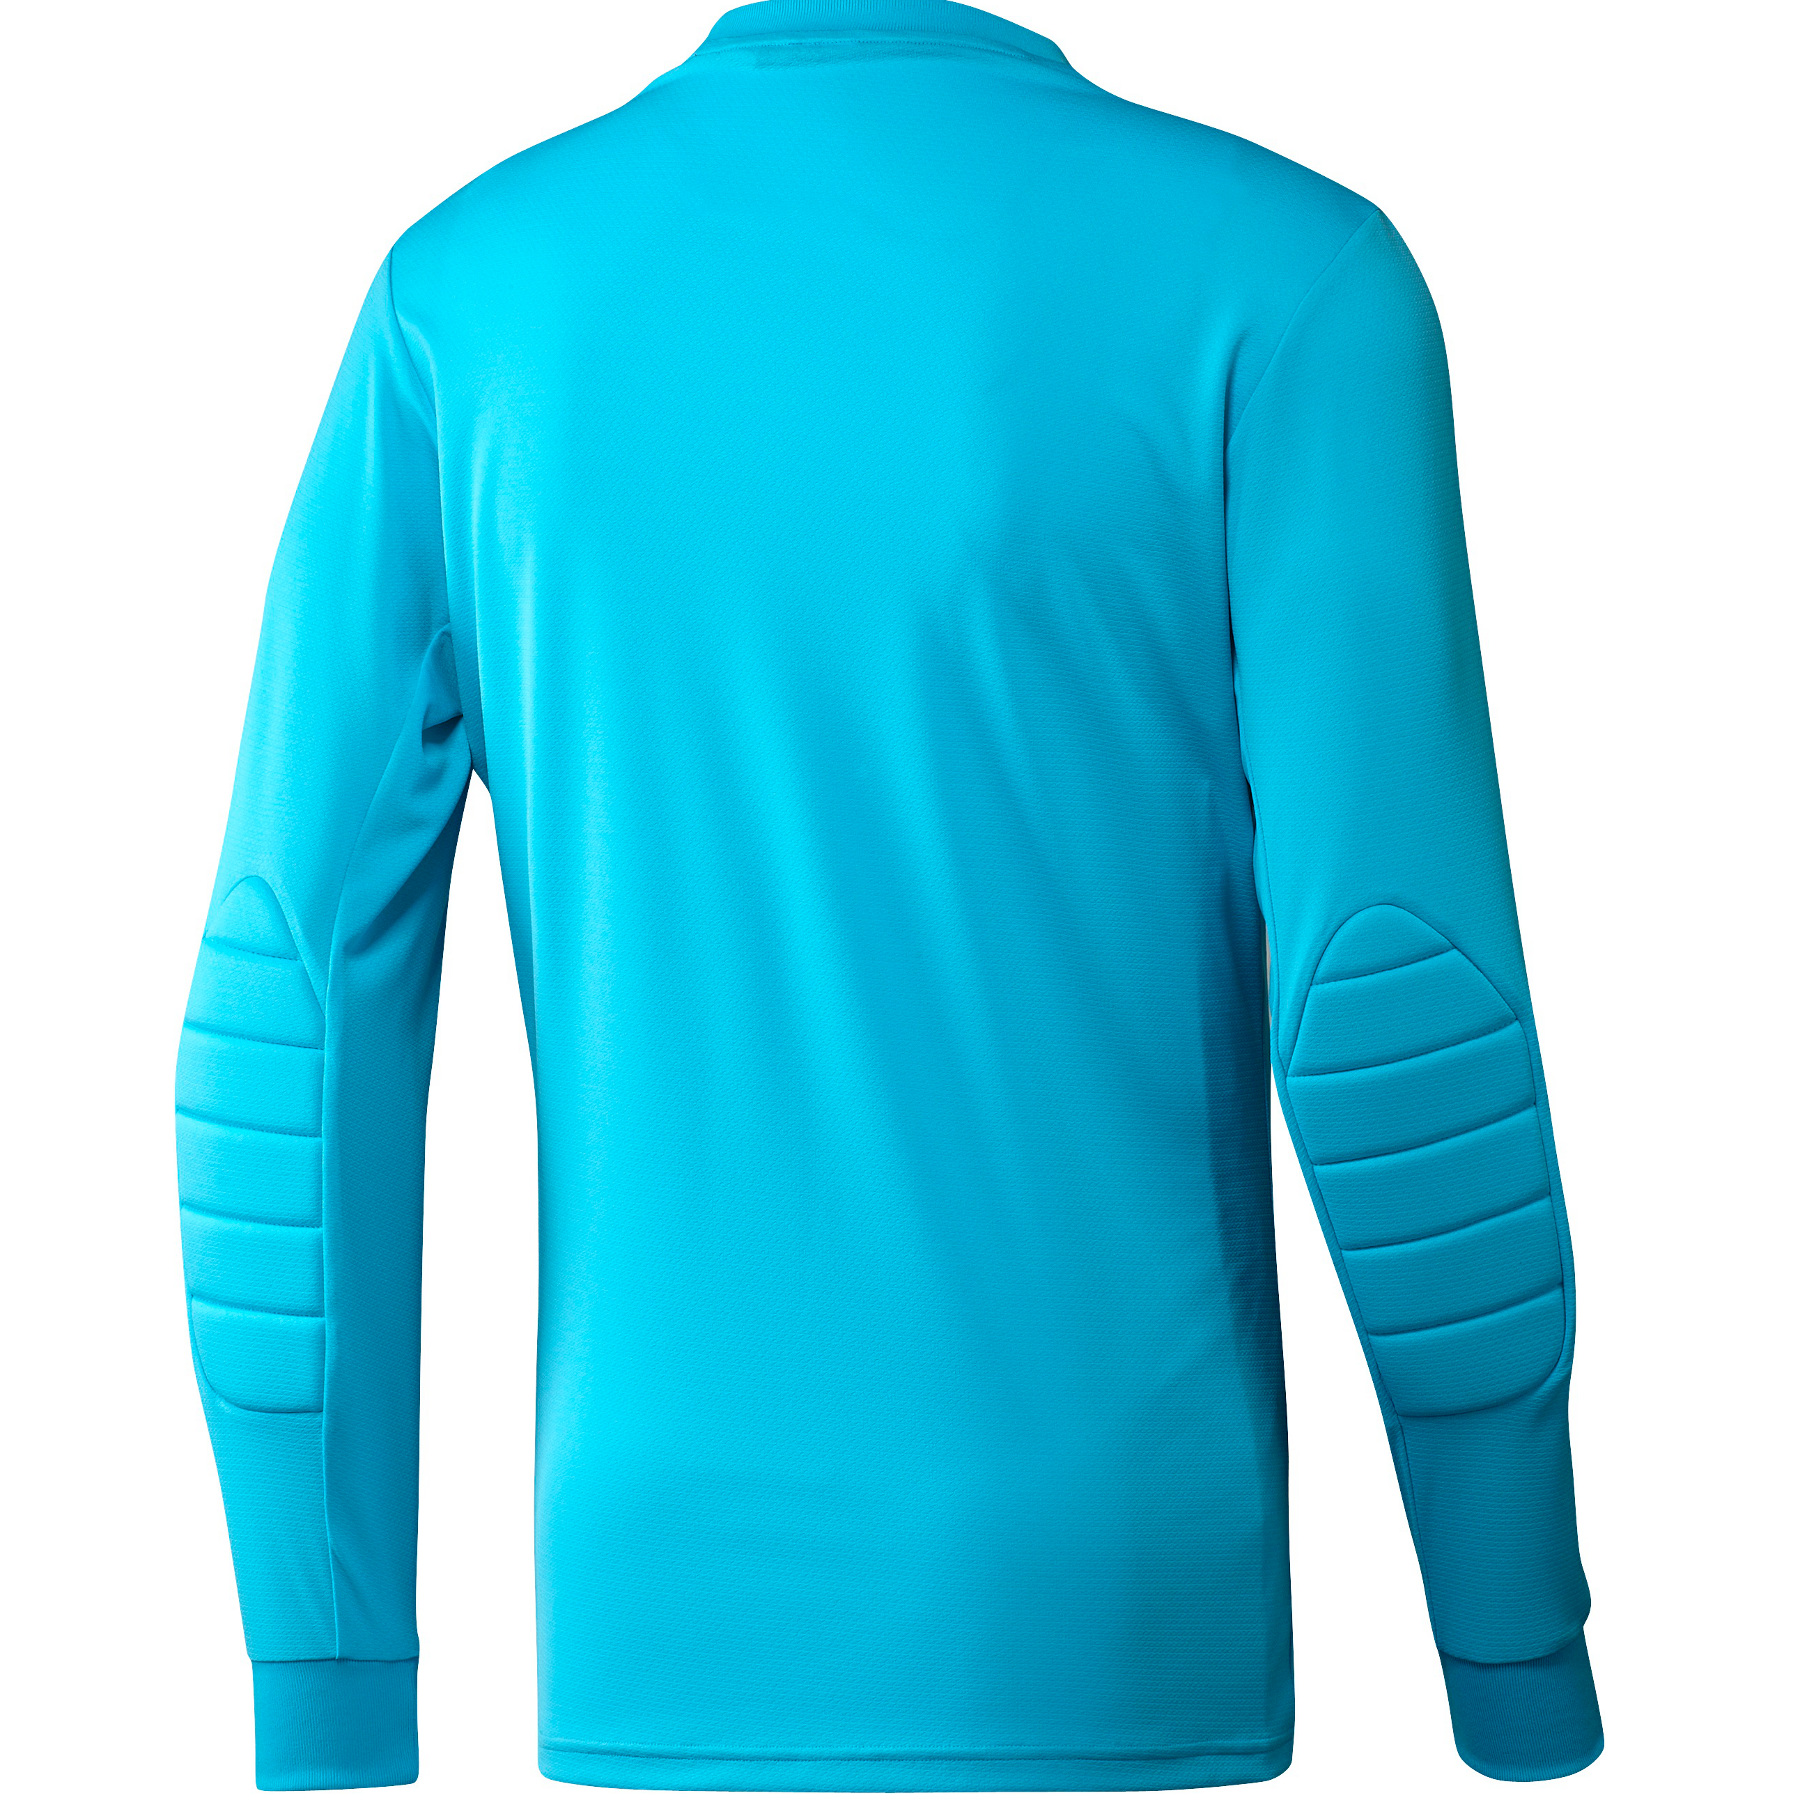 adidas bilvo 13 kinder torwarttrikot goalkeeper jersey trikot. Black Bedroom Furniture Sets. Home Design Ideas